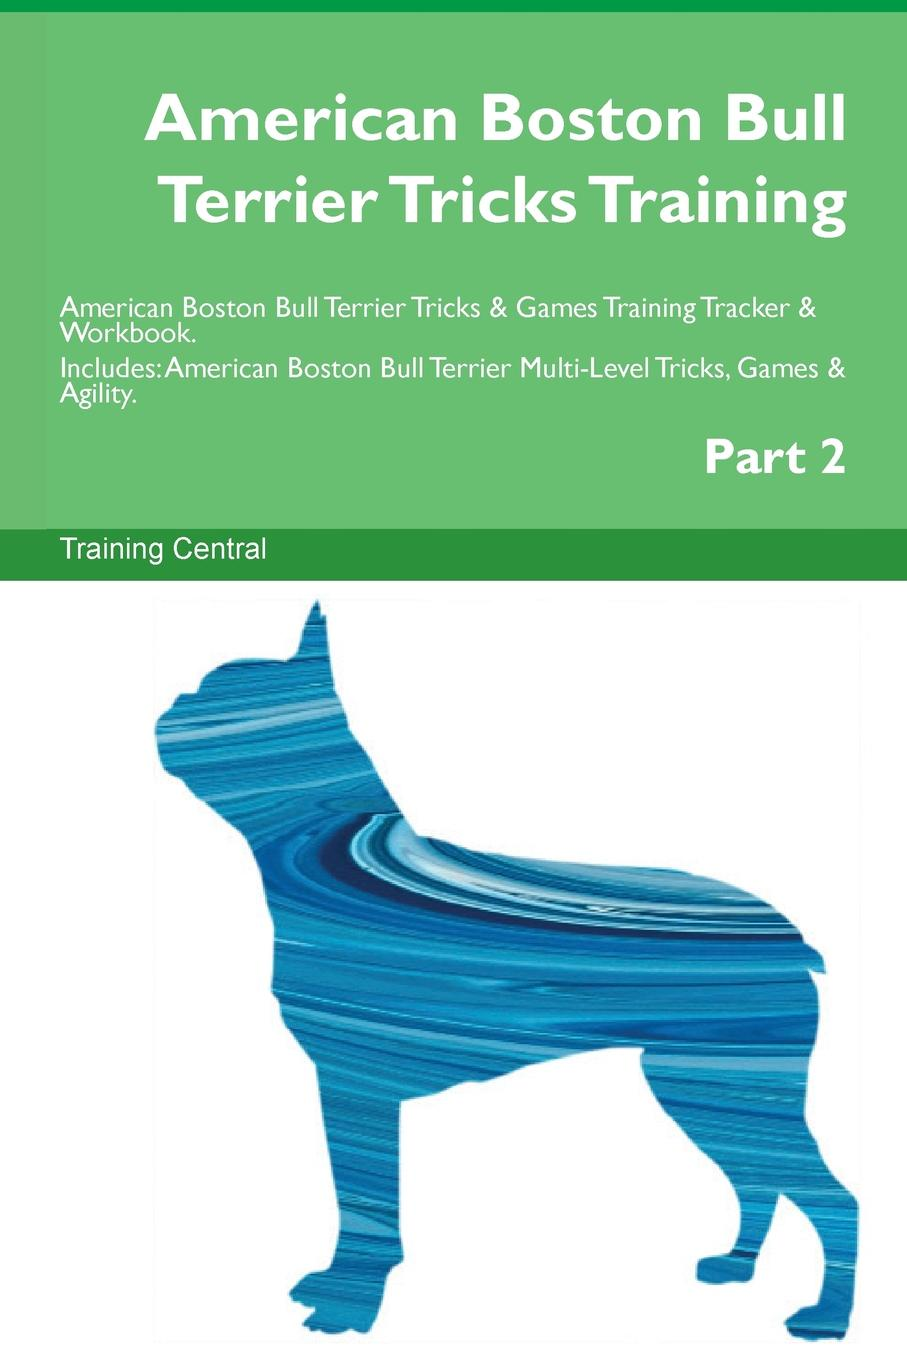 Training Central American Boston Bull Terrier Tricks Training American Boston Bull Terrier Tricks & Games Training Tracker & Workbook. Includes. American Boston Bull Terrier Multi-Level Tricks, Games & Agility. Part 2